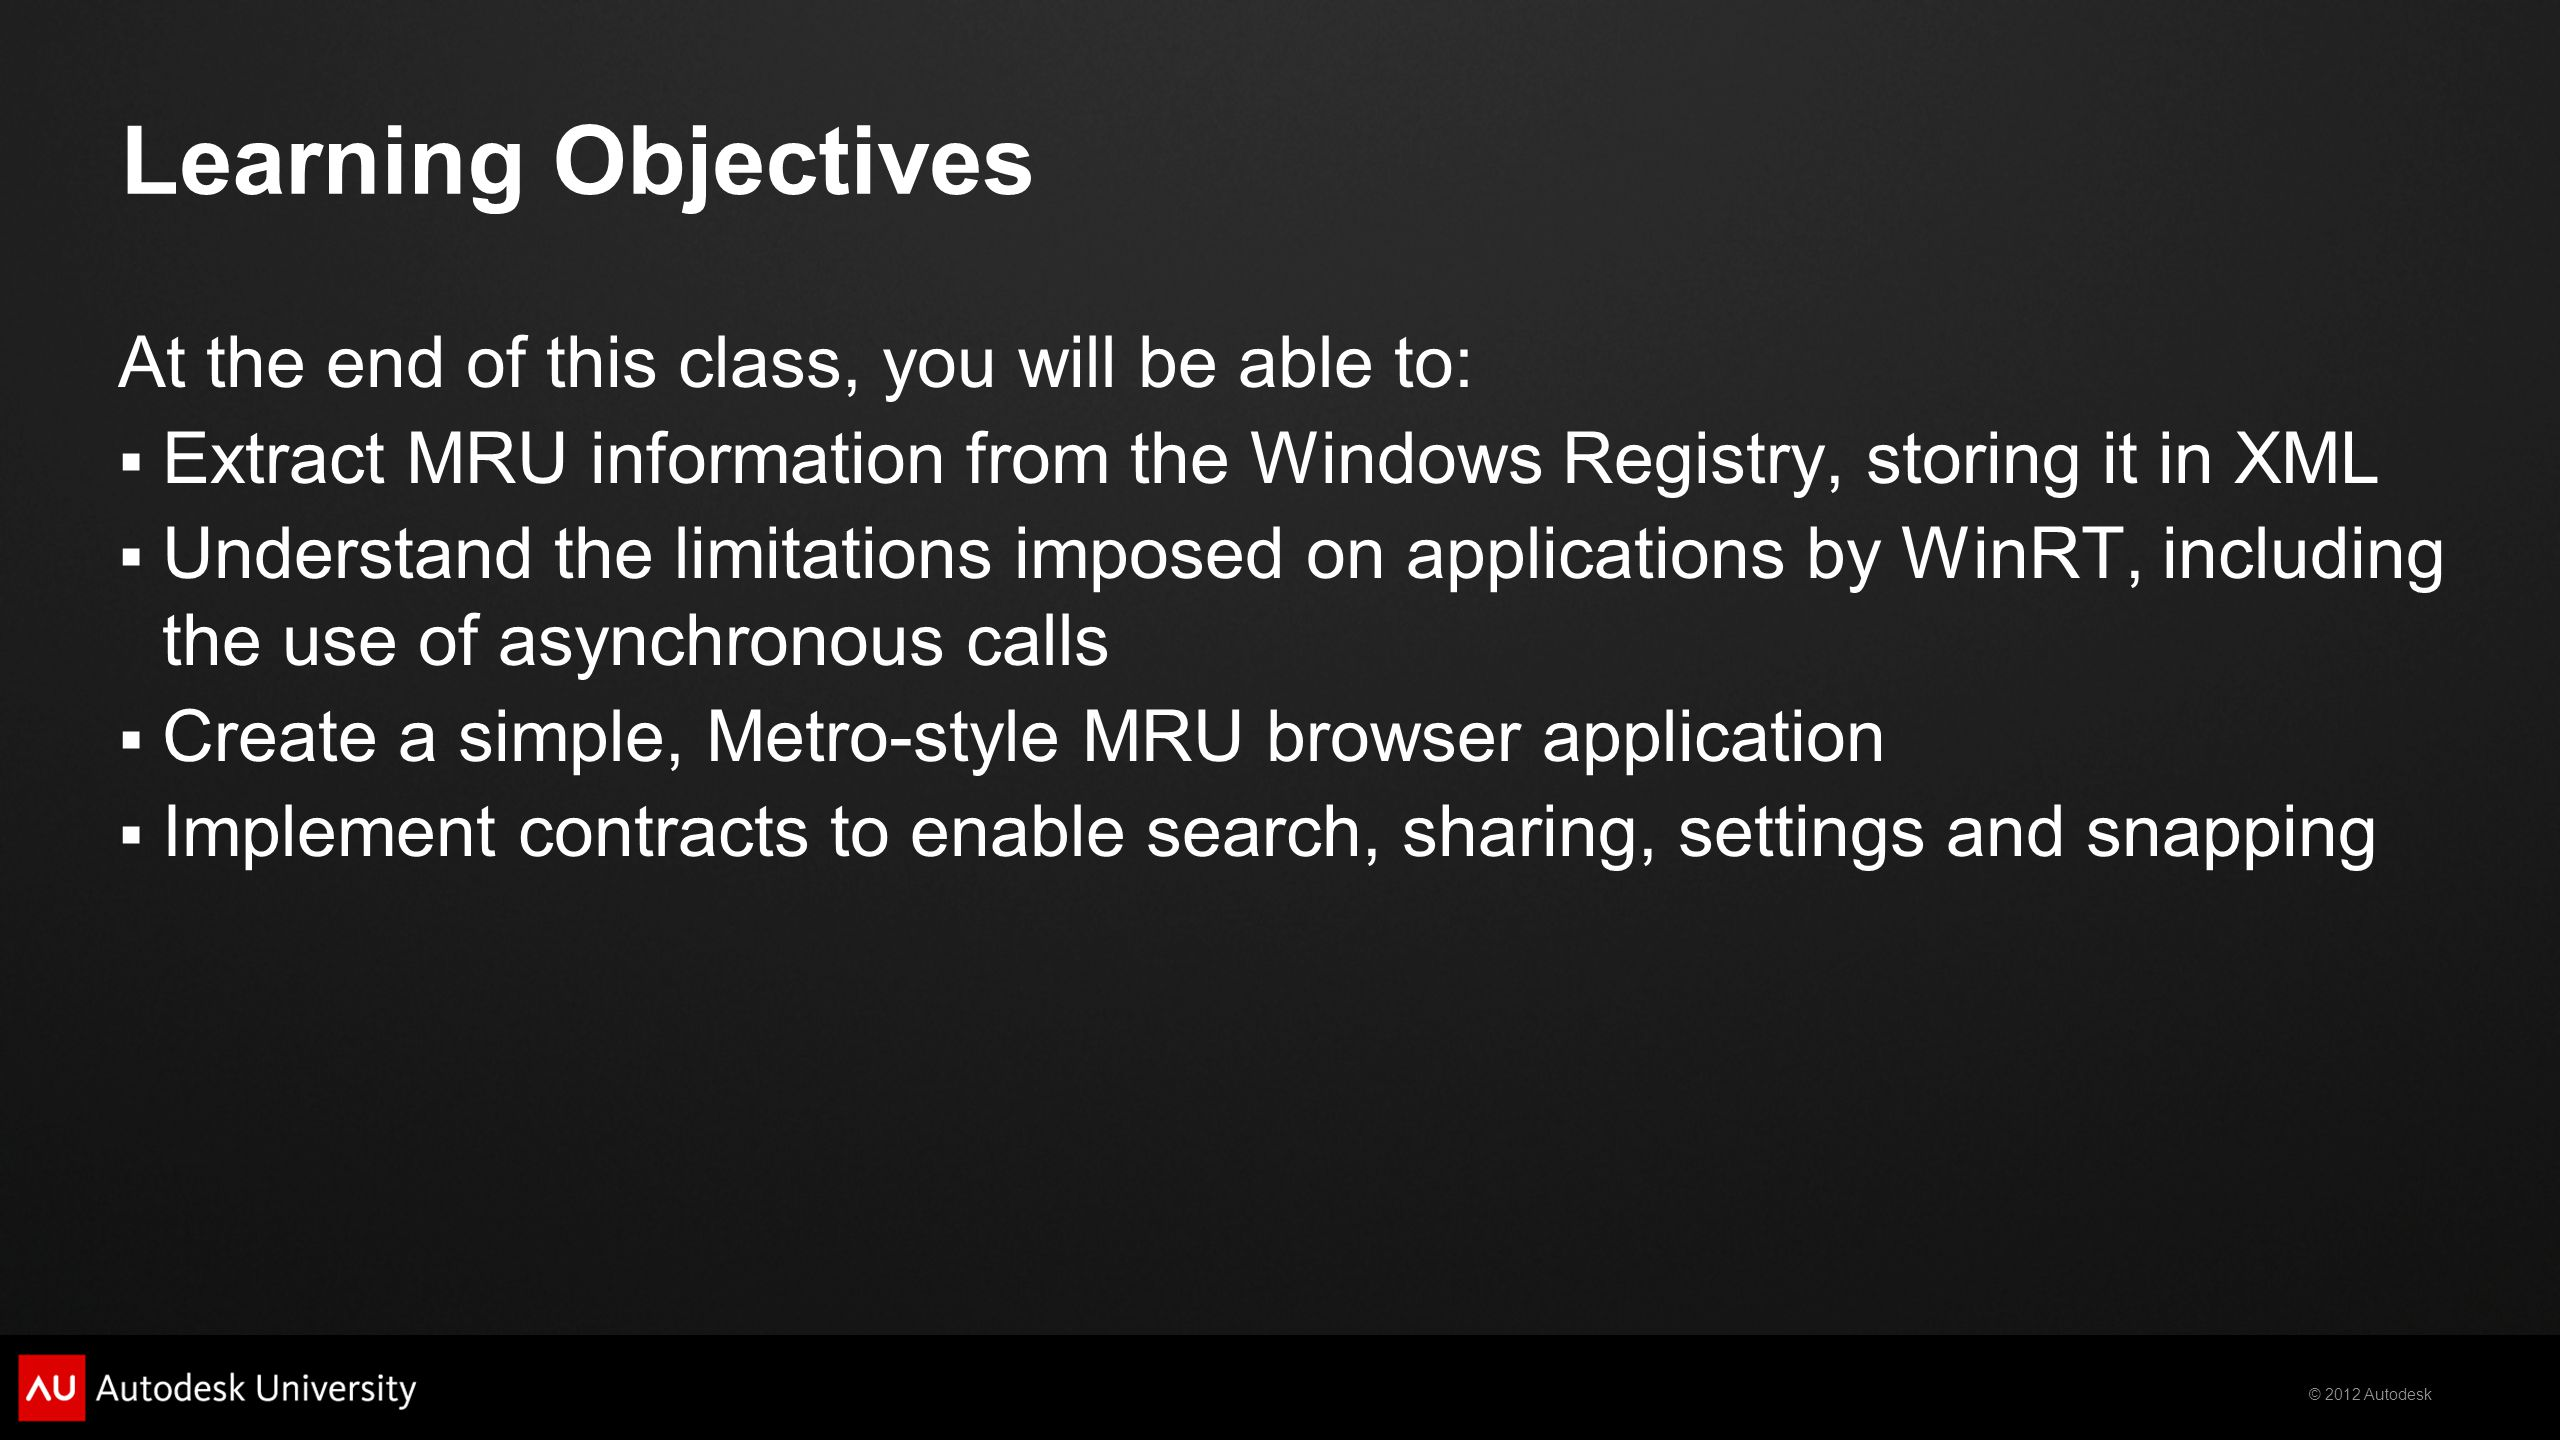 © 2012 Autodesk Learning Objectives At the end of this class, you will be able to: Extract MRU information from the Windows Registry, storing it in XML Understand the limitations imposed on applications by WinRT, including the use of asynchronous calls Create a simple, Metro-style MRU browser application Implement contracts to enable search, sharing, settings and snapping